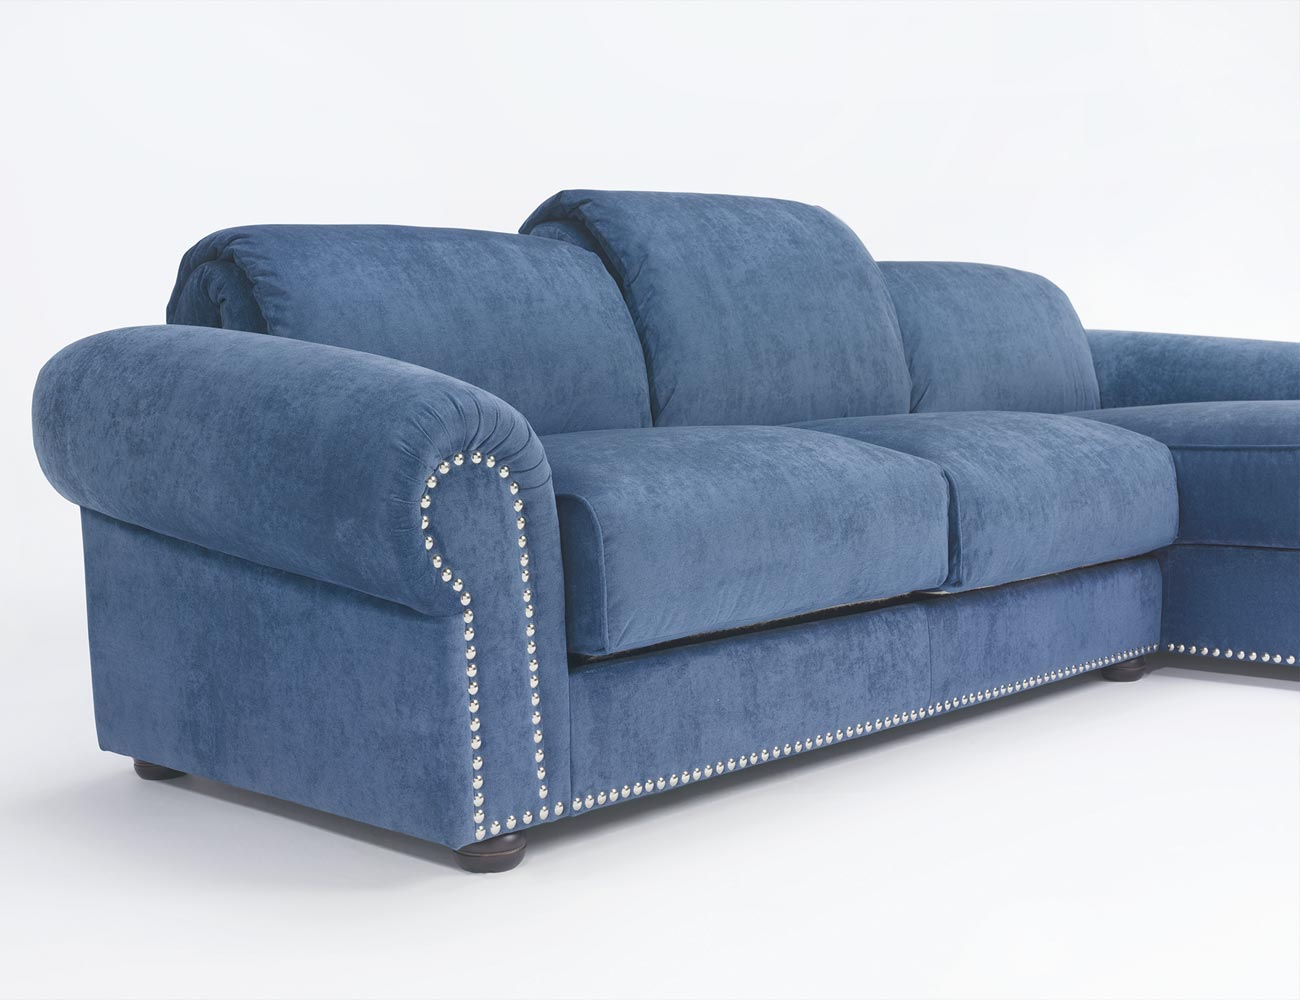 Sofa chaiselongue gran lujo decorativo azul 117